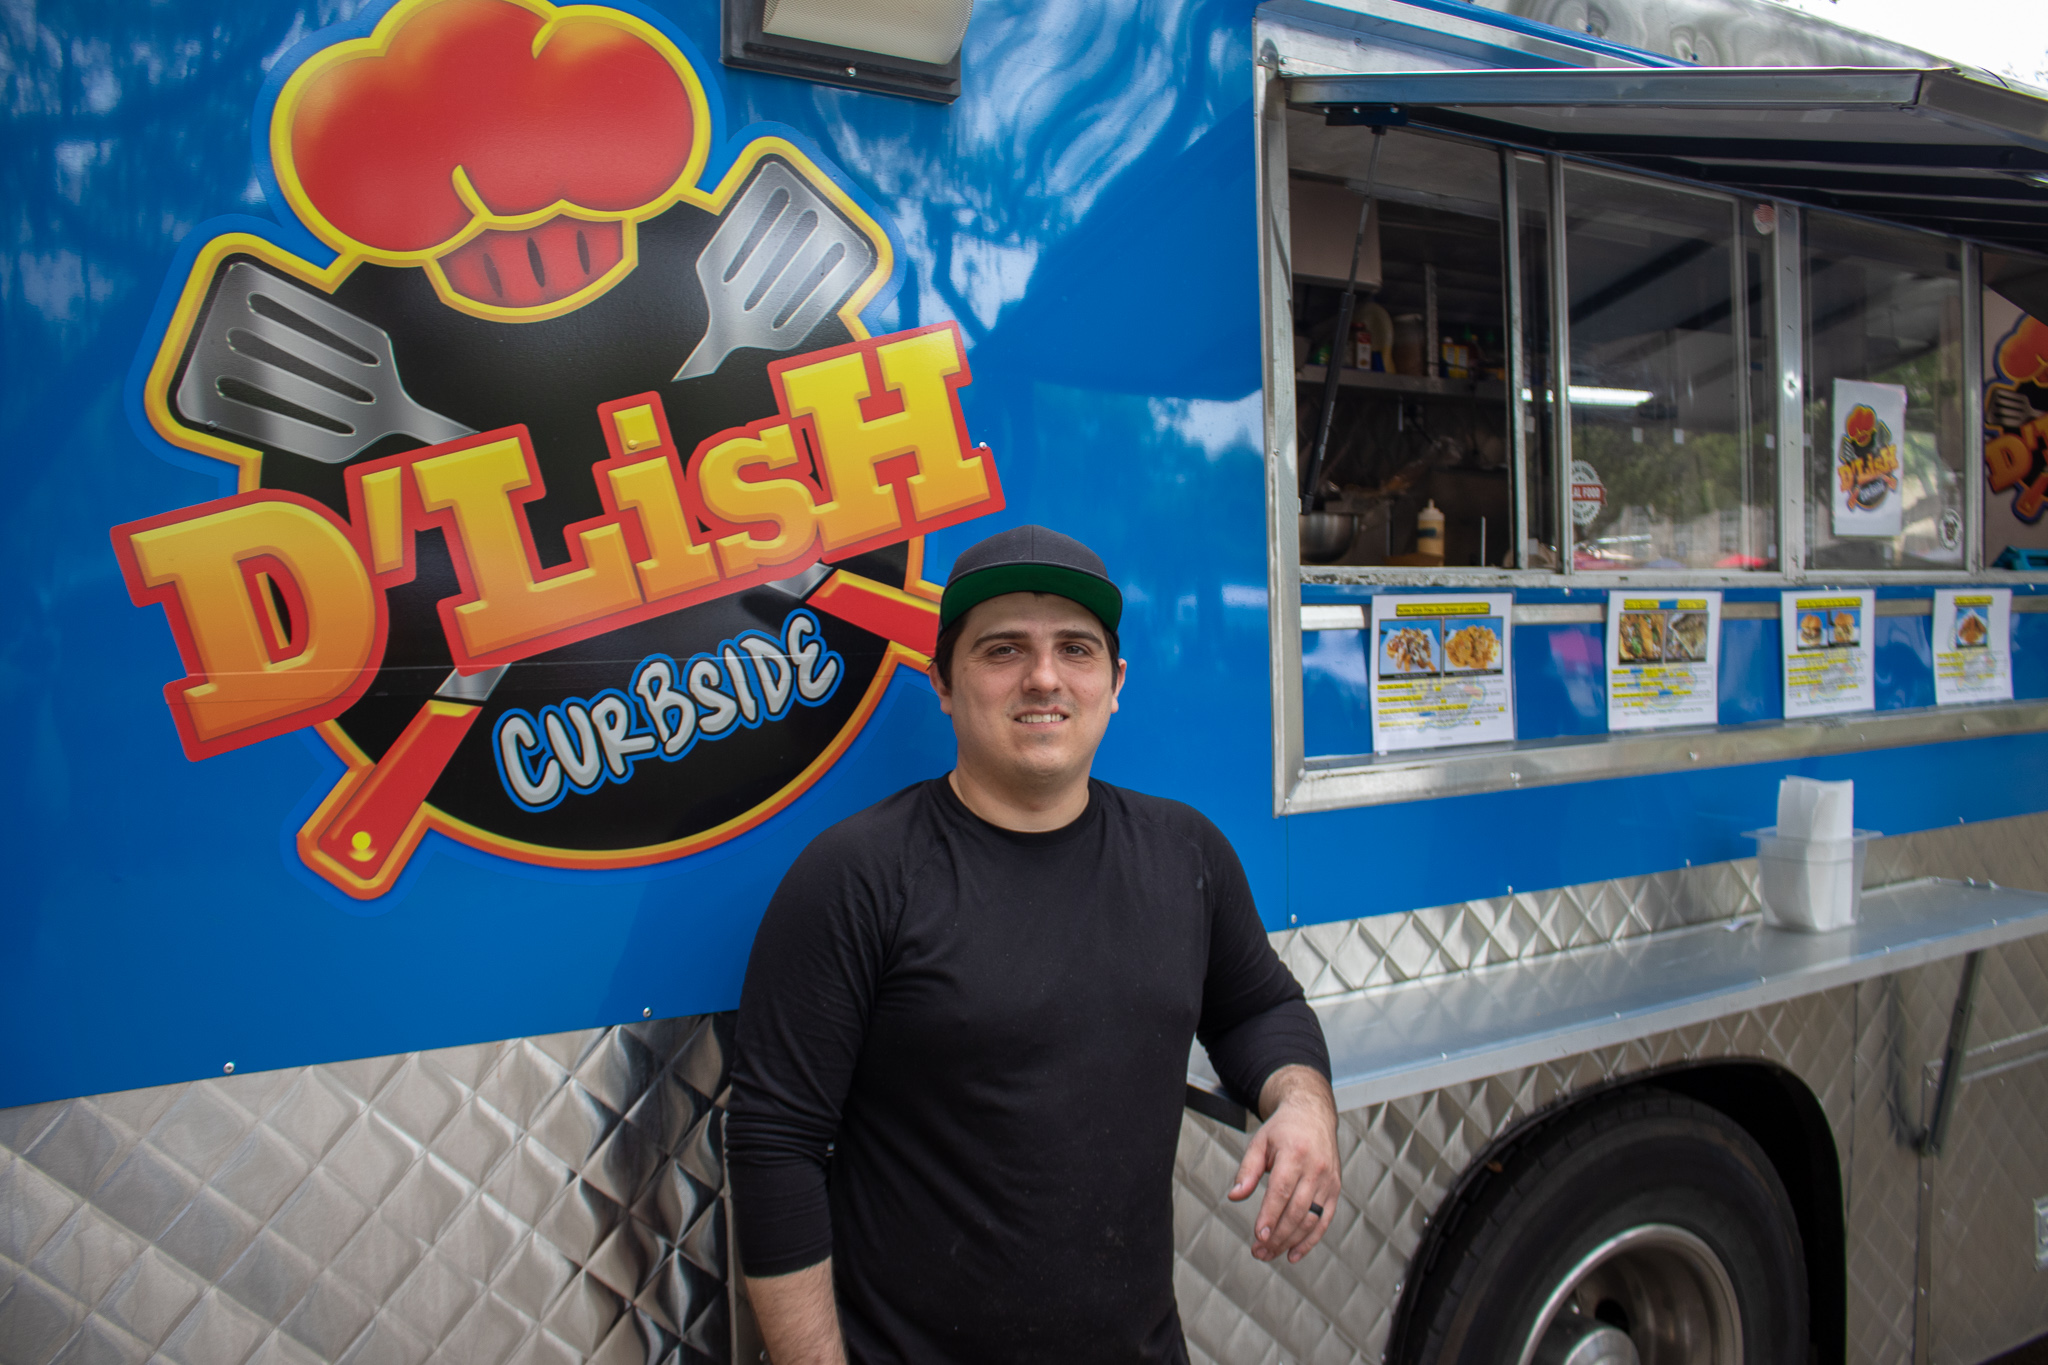 D'Lish Curbside Bistro